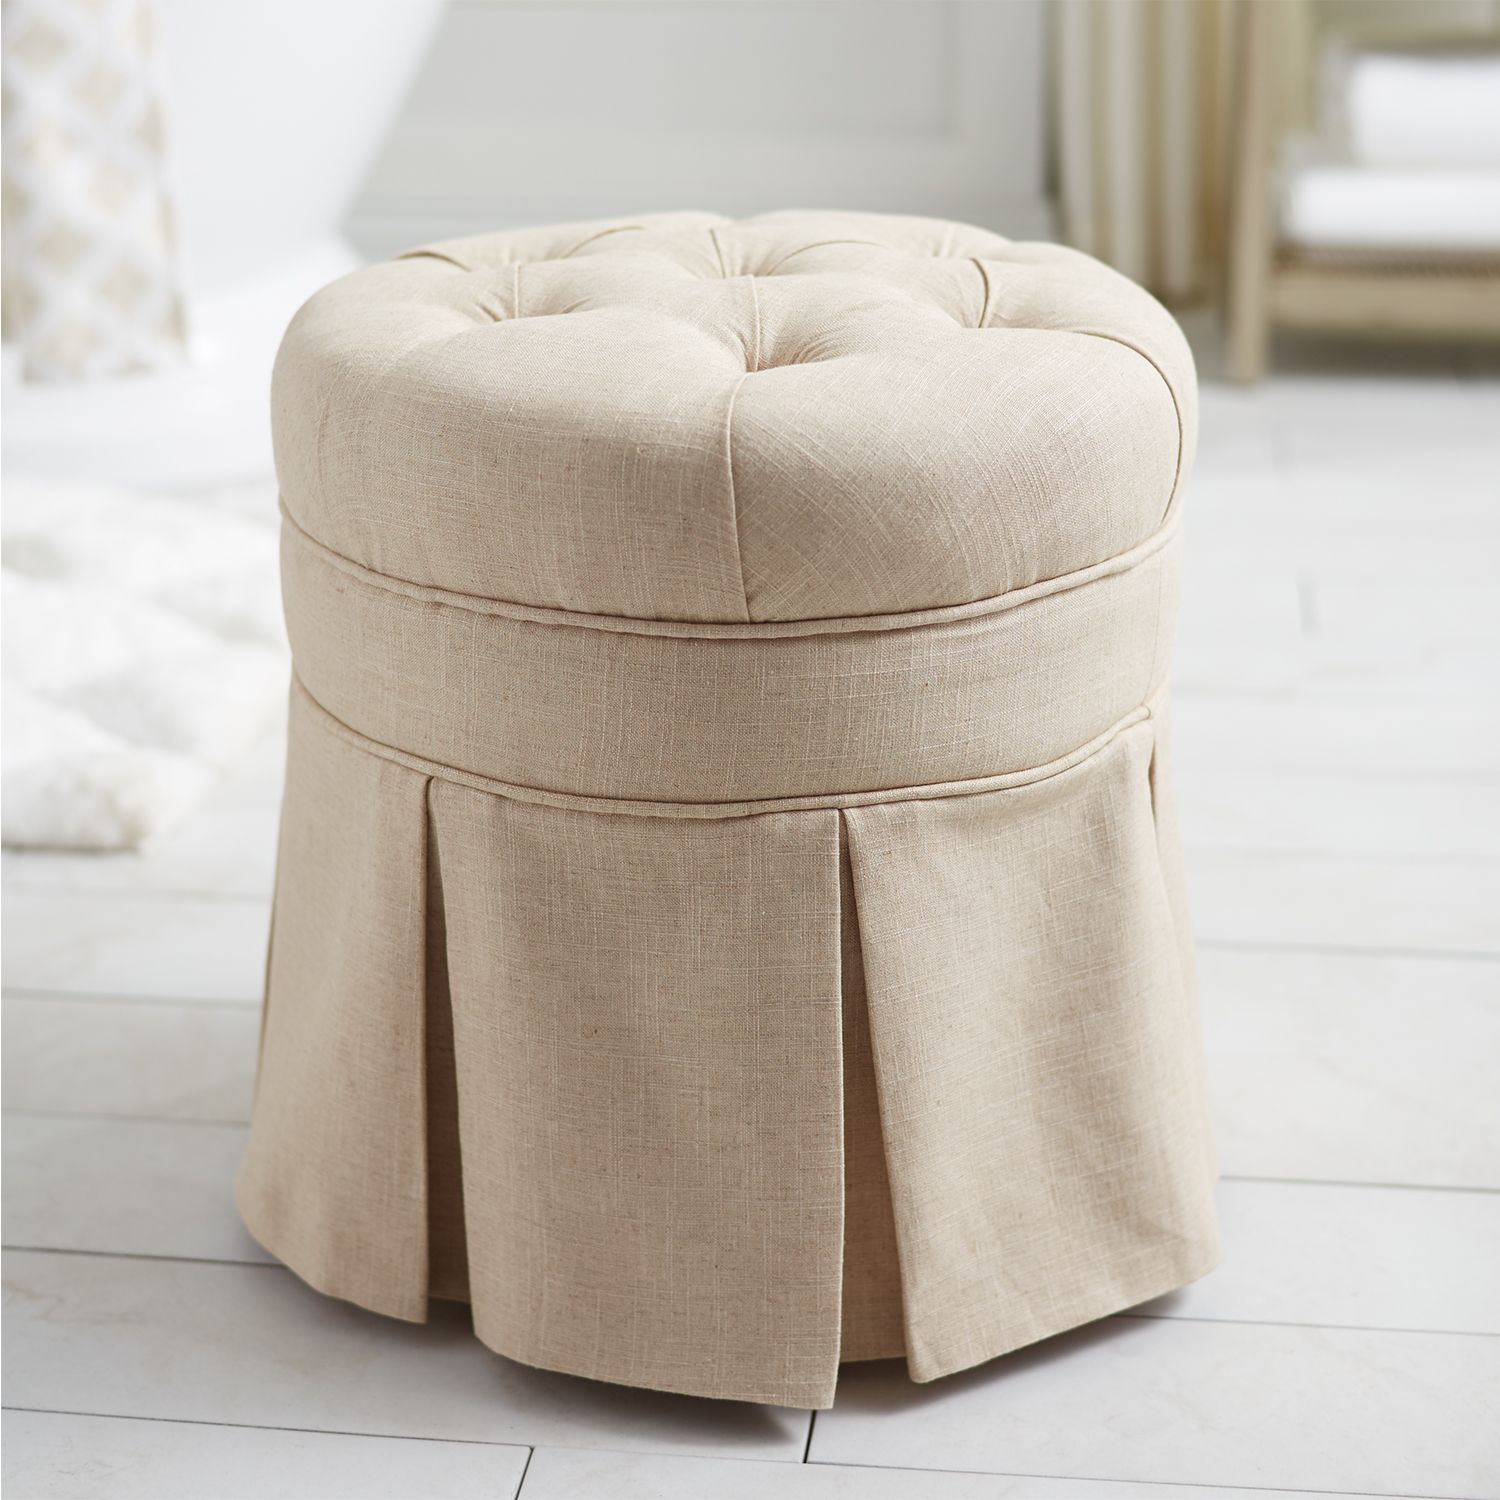 Magnificent Avery Vanity Stool In 2019 Vanity Stool Stool Shabby Caraccident5 Cool Chair Designs And Ideas Caraccident5Info